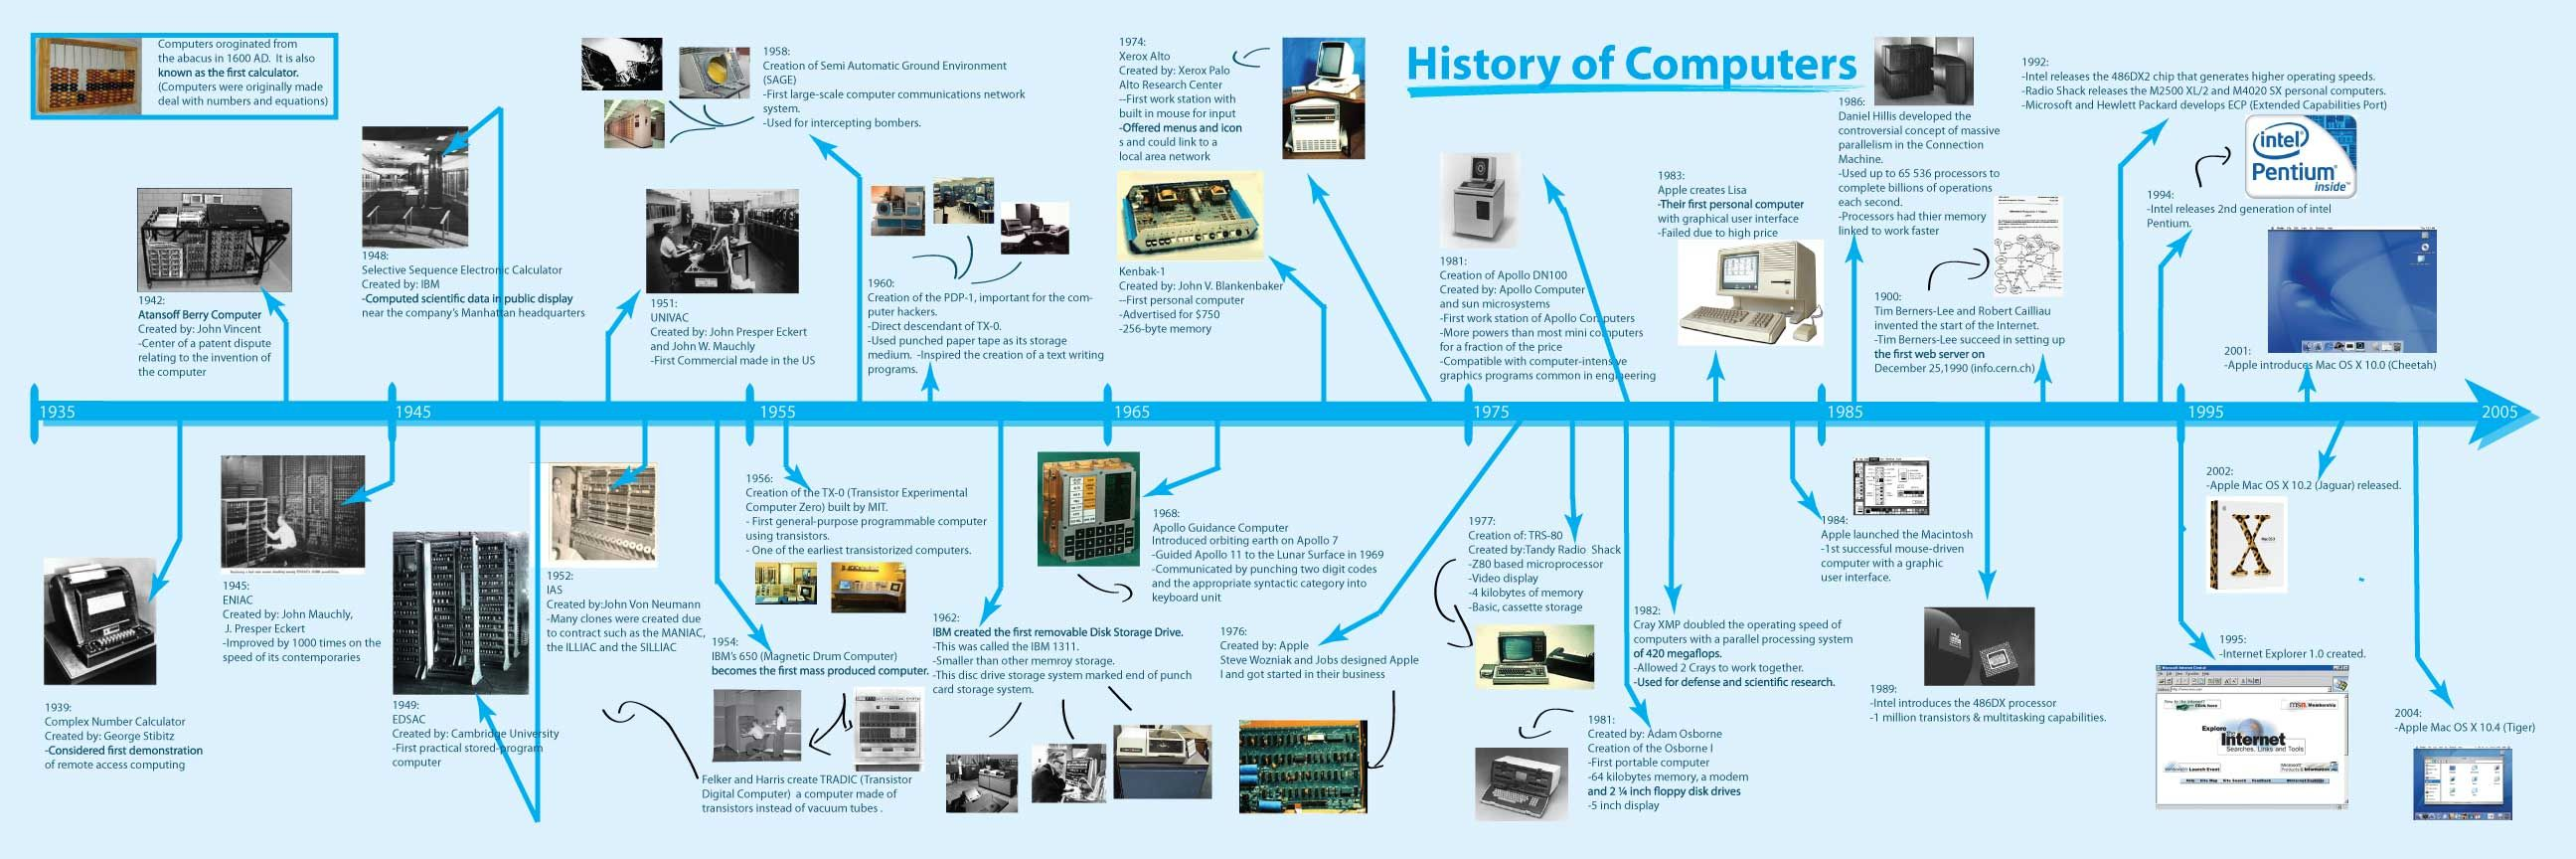 a history of the evolution of computers Presentation-history and evolution of computer - free download as powerpoint presentation (ppt), pdf file (pdf), text file (txt) or view presentation slides online december 2008.